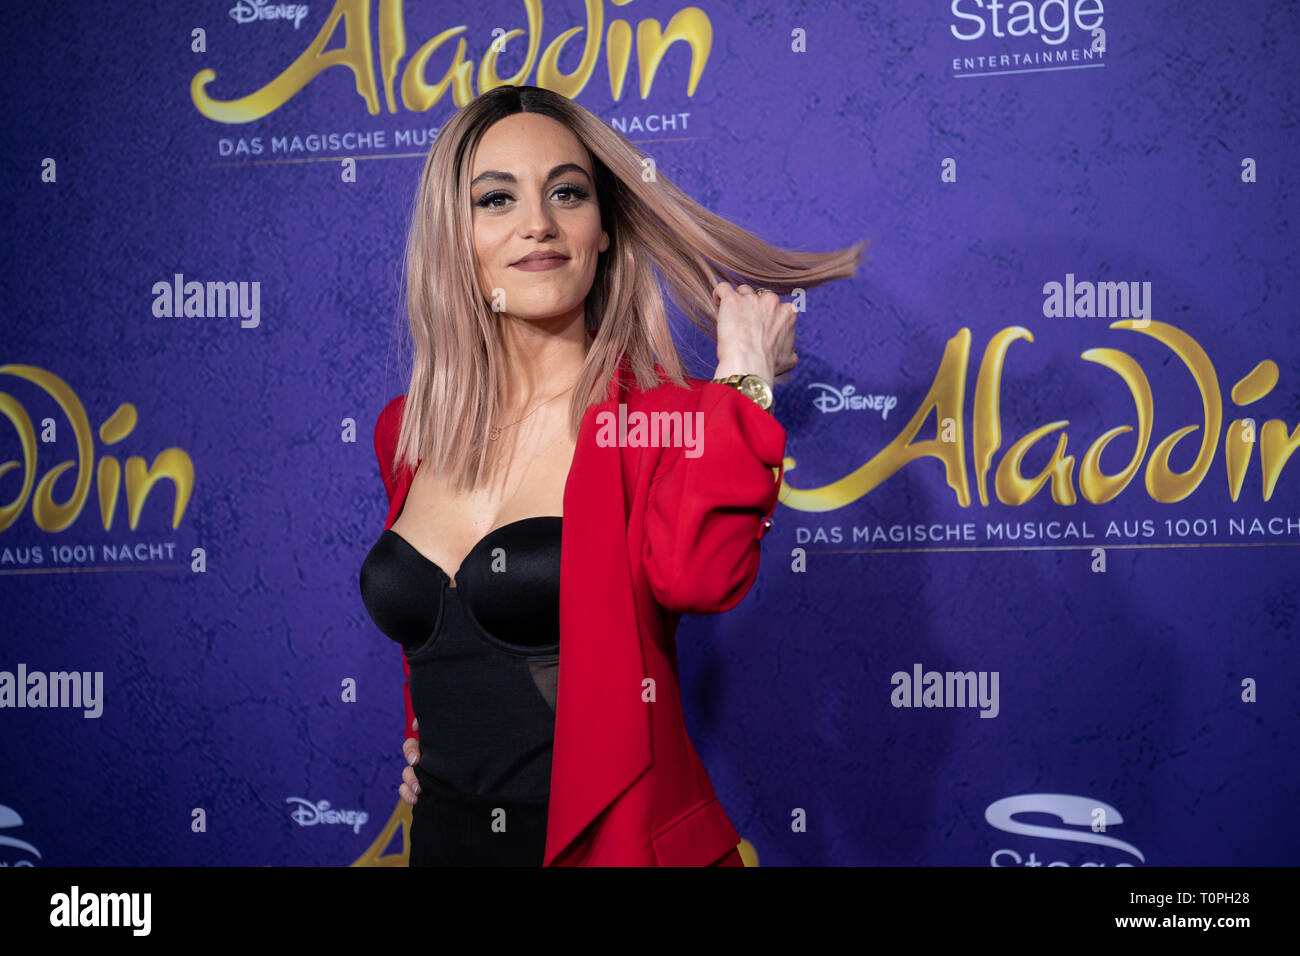 Stuttgart, Germany. 21st Mar, 2019. Jenny Marsala, singer, comes over the red carpet to the premiere of the musical 'Aladdin'. The musical was previously shown in Hamburg. Credit: Fabian Sommer/dpa/Alamy Live News - Stock Image